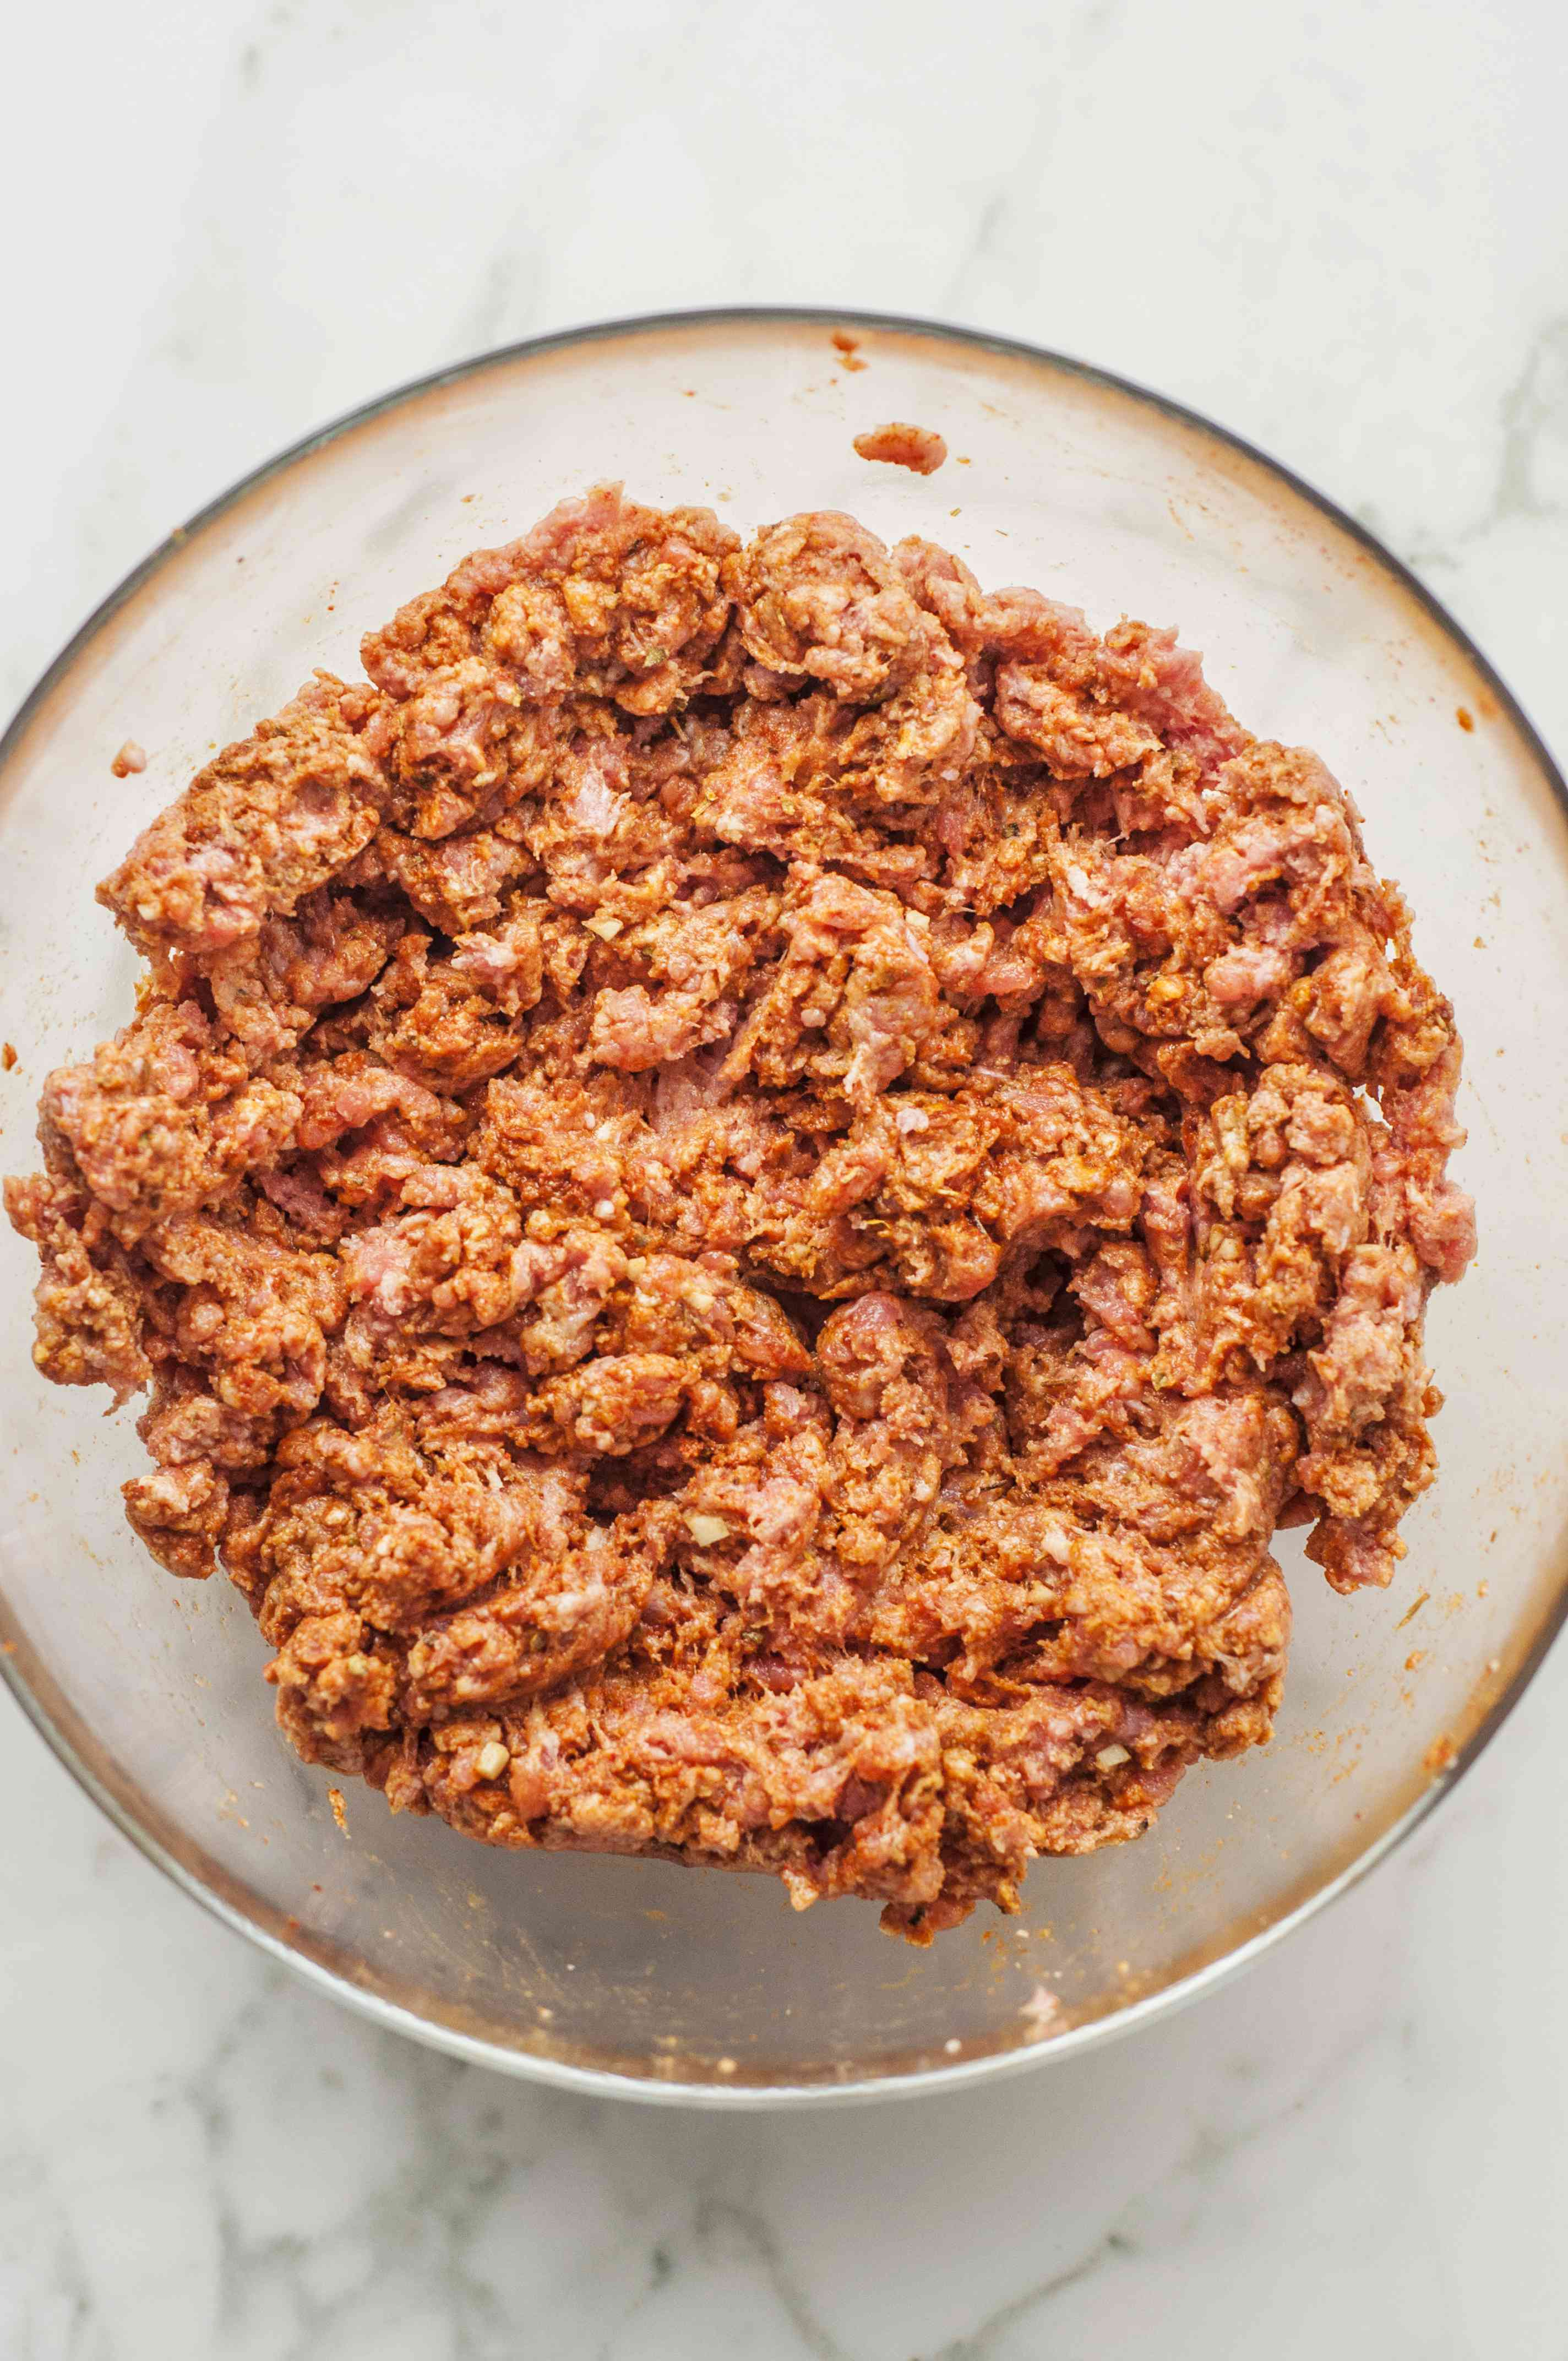 Ground pork is mixed with vinegar and seasonings